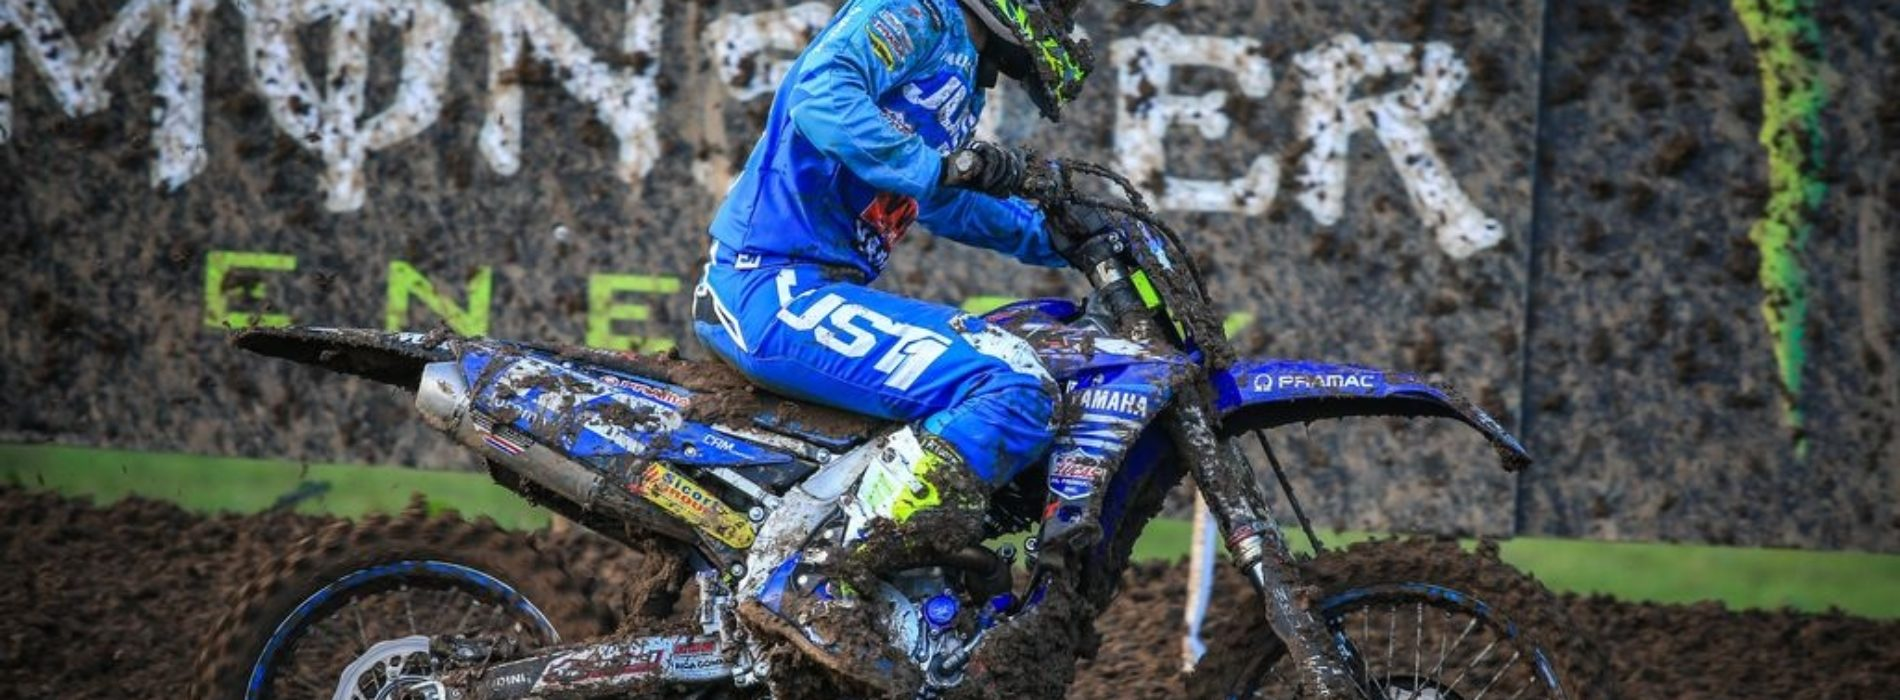 Lynn Valk made impressive start to 2020 WMX going 3-5 for 5th Overall